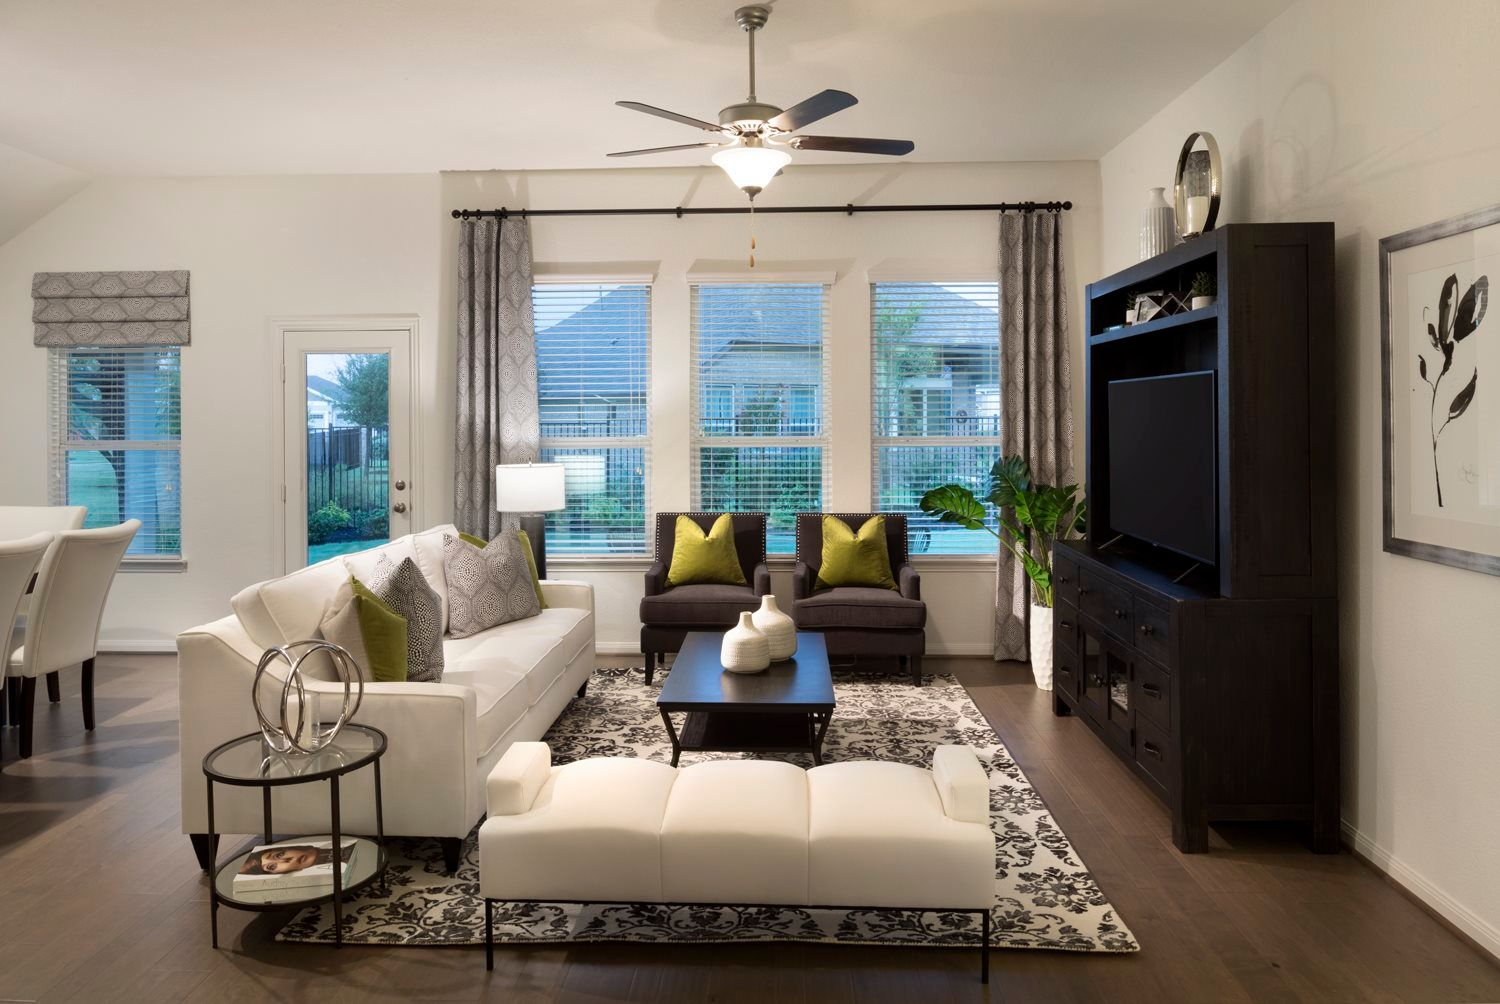 'Oaks at San Gabriel - Brookstone Collection' by Lennar - Austin Homebuilding in Austin